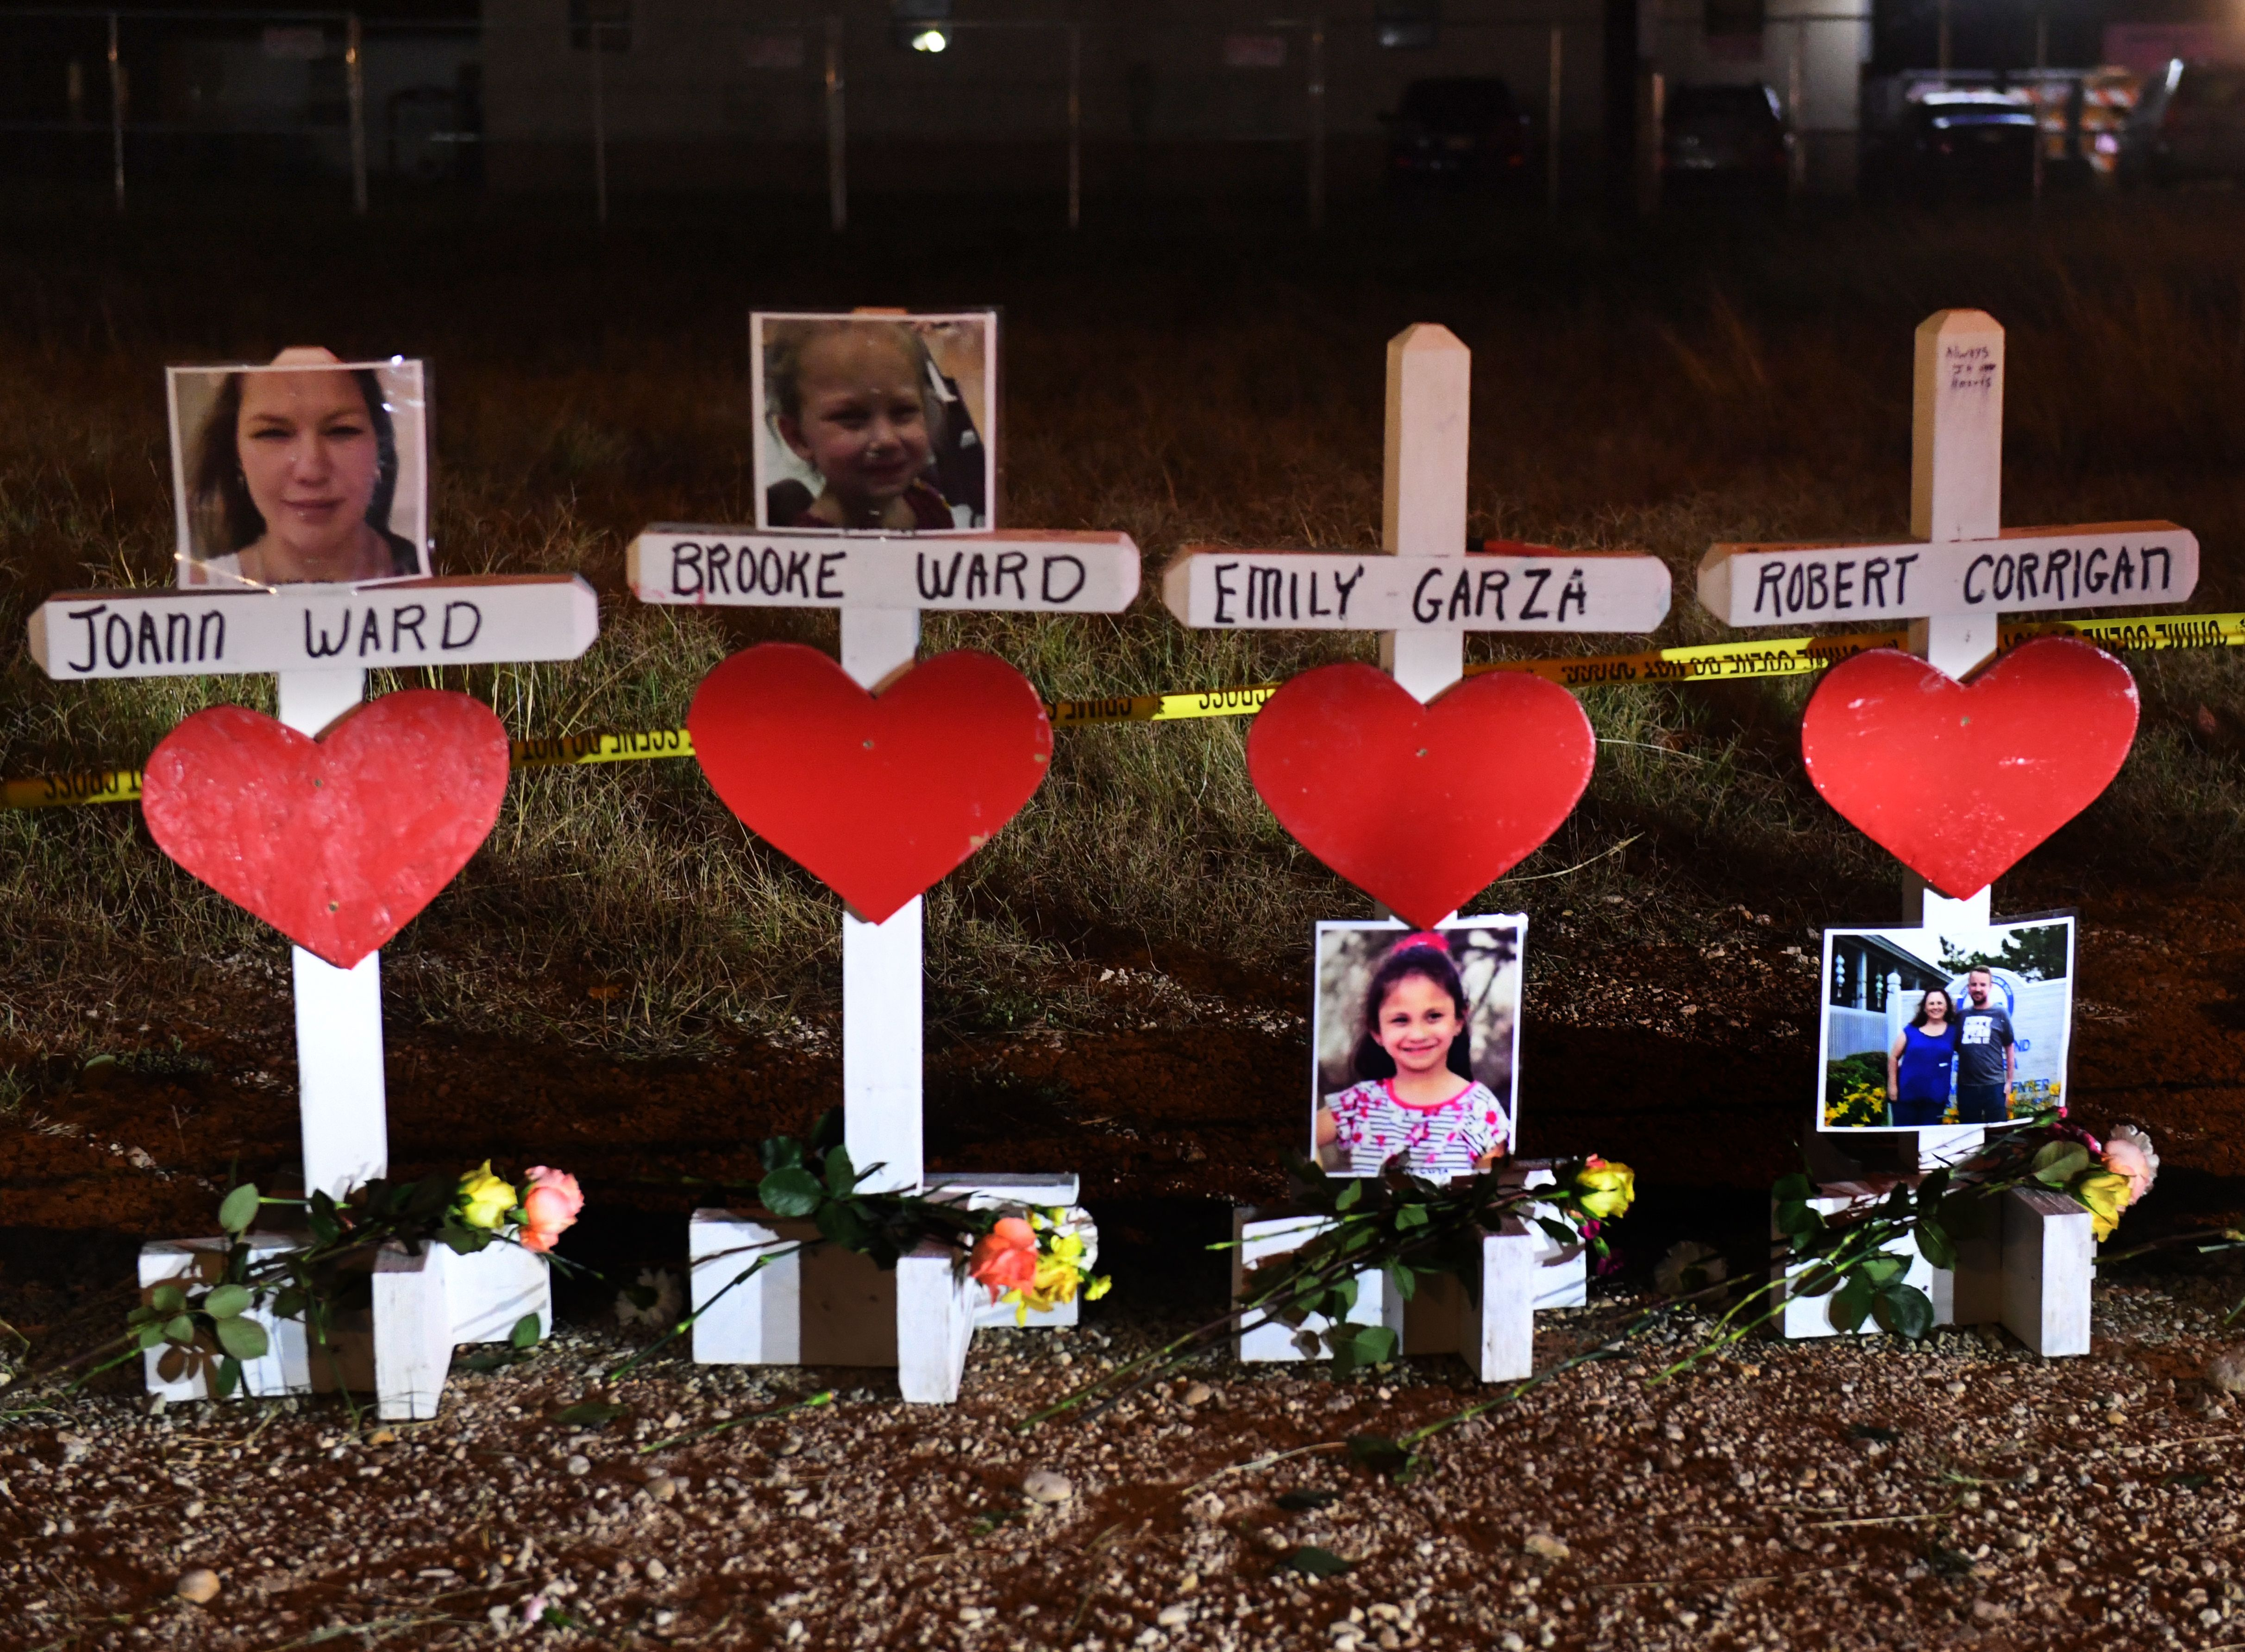 Crosses with the names of victims are seen outside the First Baptist Church which was the scene of the mass shooting that killed 26 people in Sutherland Springs, Texas on November 8, 2017. (Mark Ralston/AFP/Getty Images)